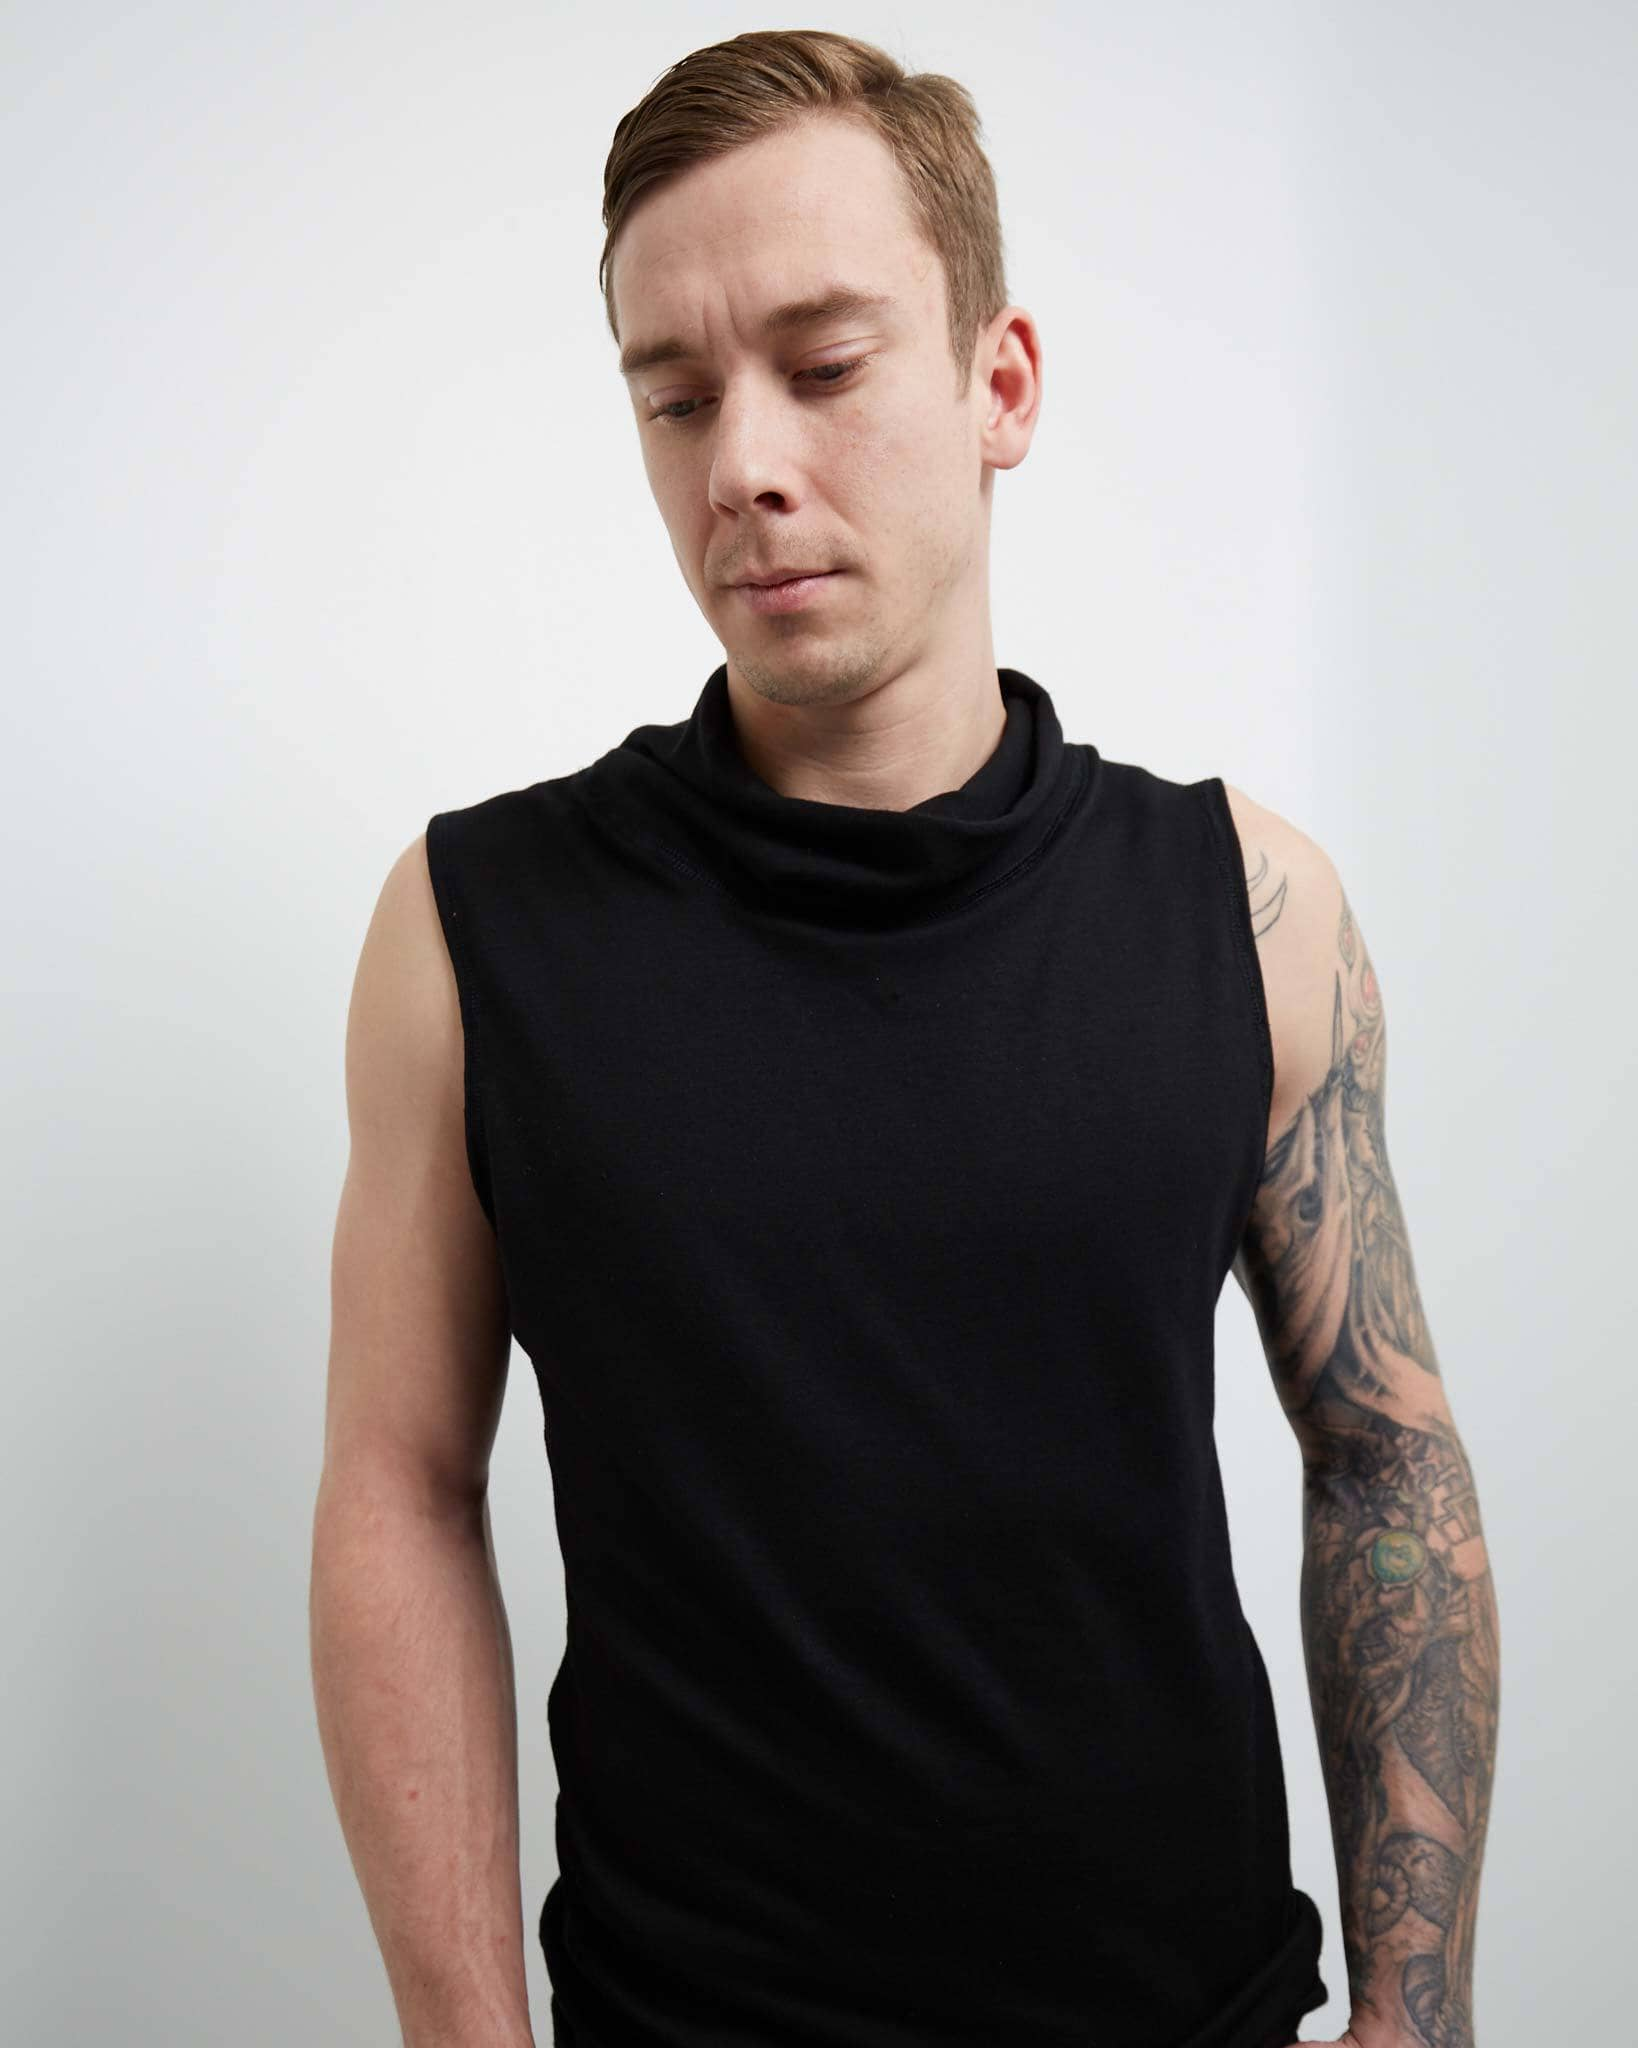 Men's designer tank top made with stretchy black fleece